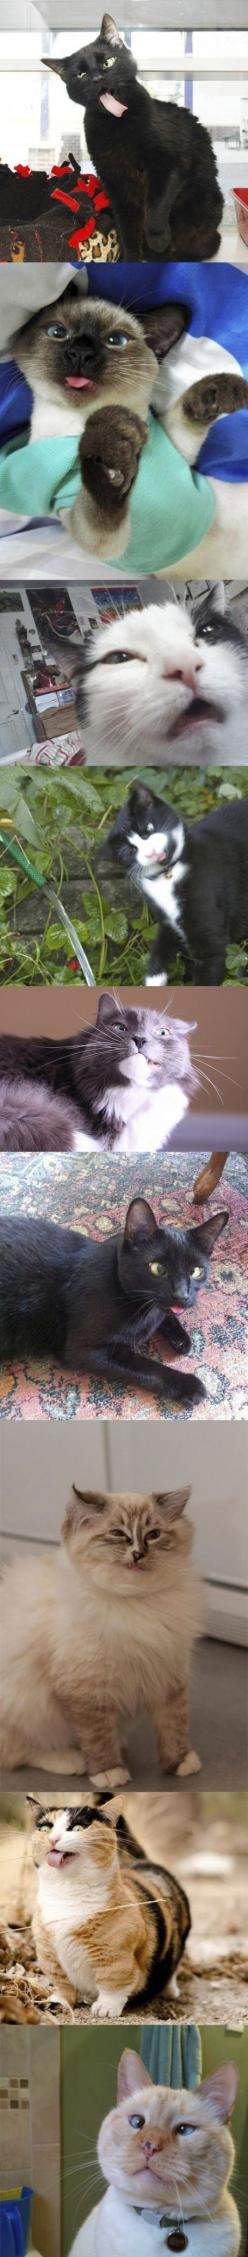 Funny cat faces: Funny Cats, Cat Derp, Funny Faces, Derpy Cats, Cat Faces, Drunk Cat, Animal